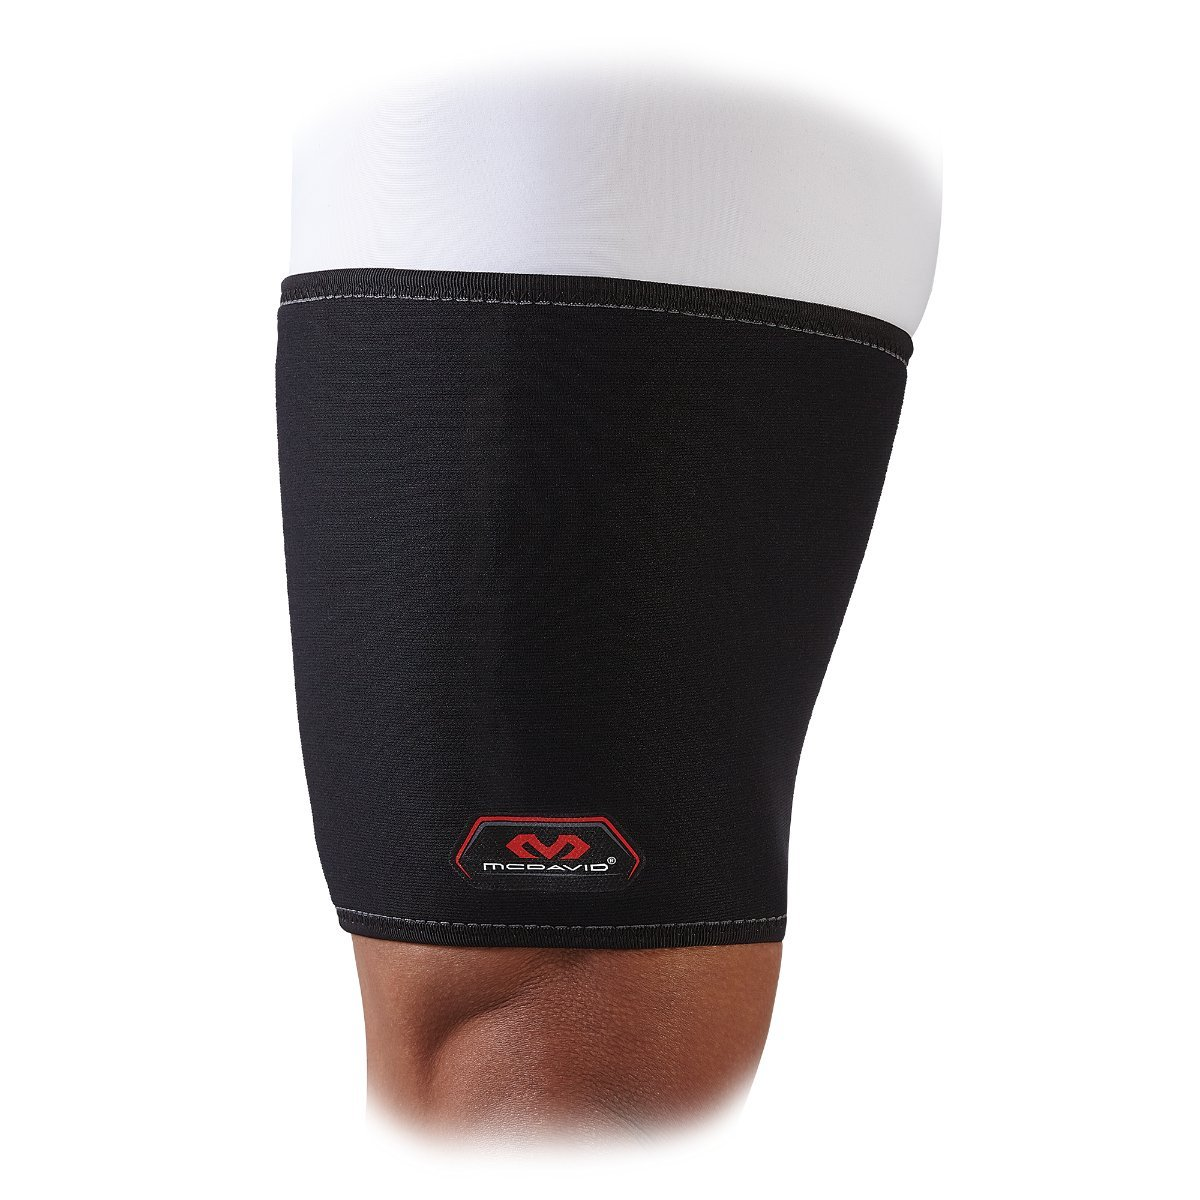 McDavid 471 Thigh Support (Black, Medium) by McDavid